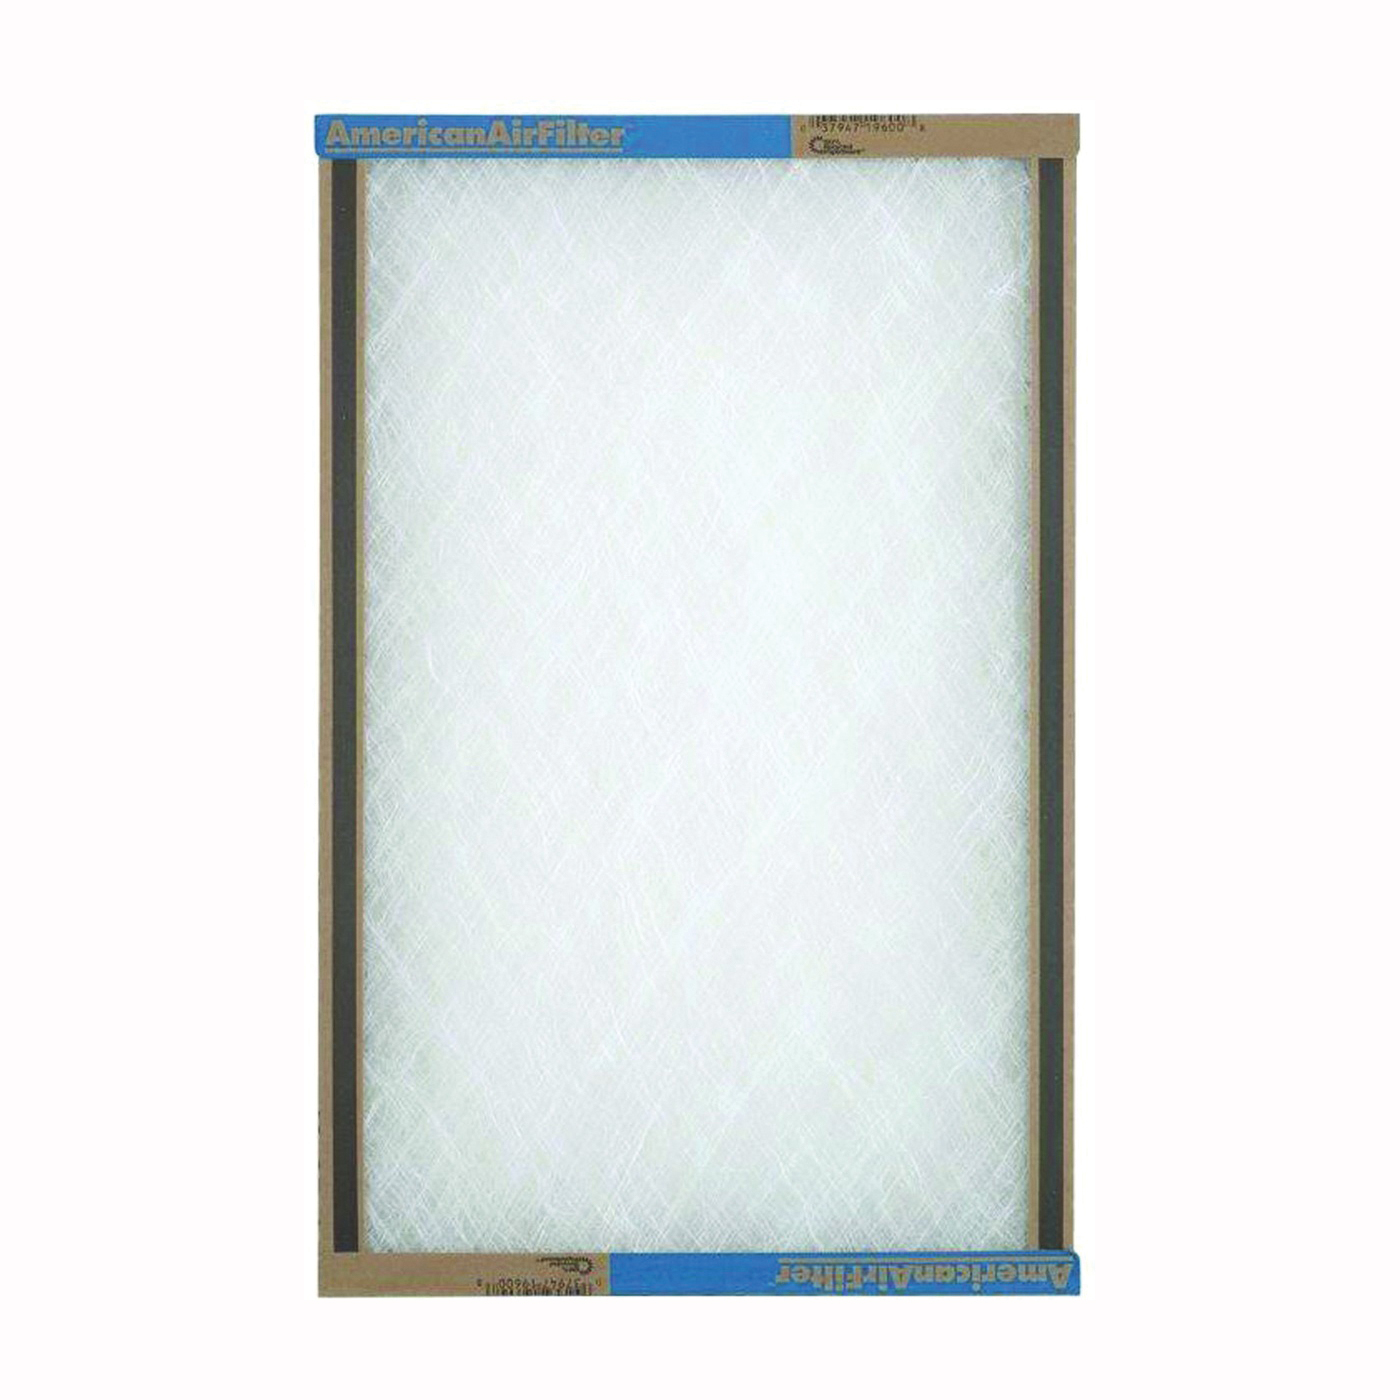 Picture of AAF 112201 Panel Filter, 20 in L, 12 in W, Chipboard Frame